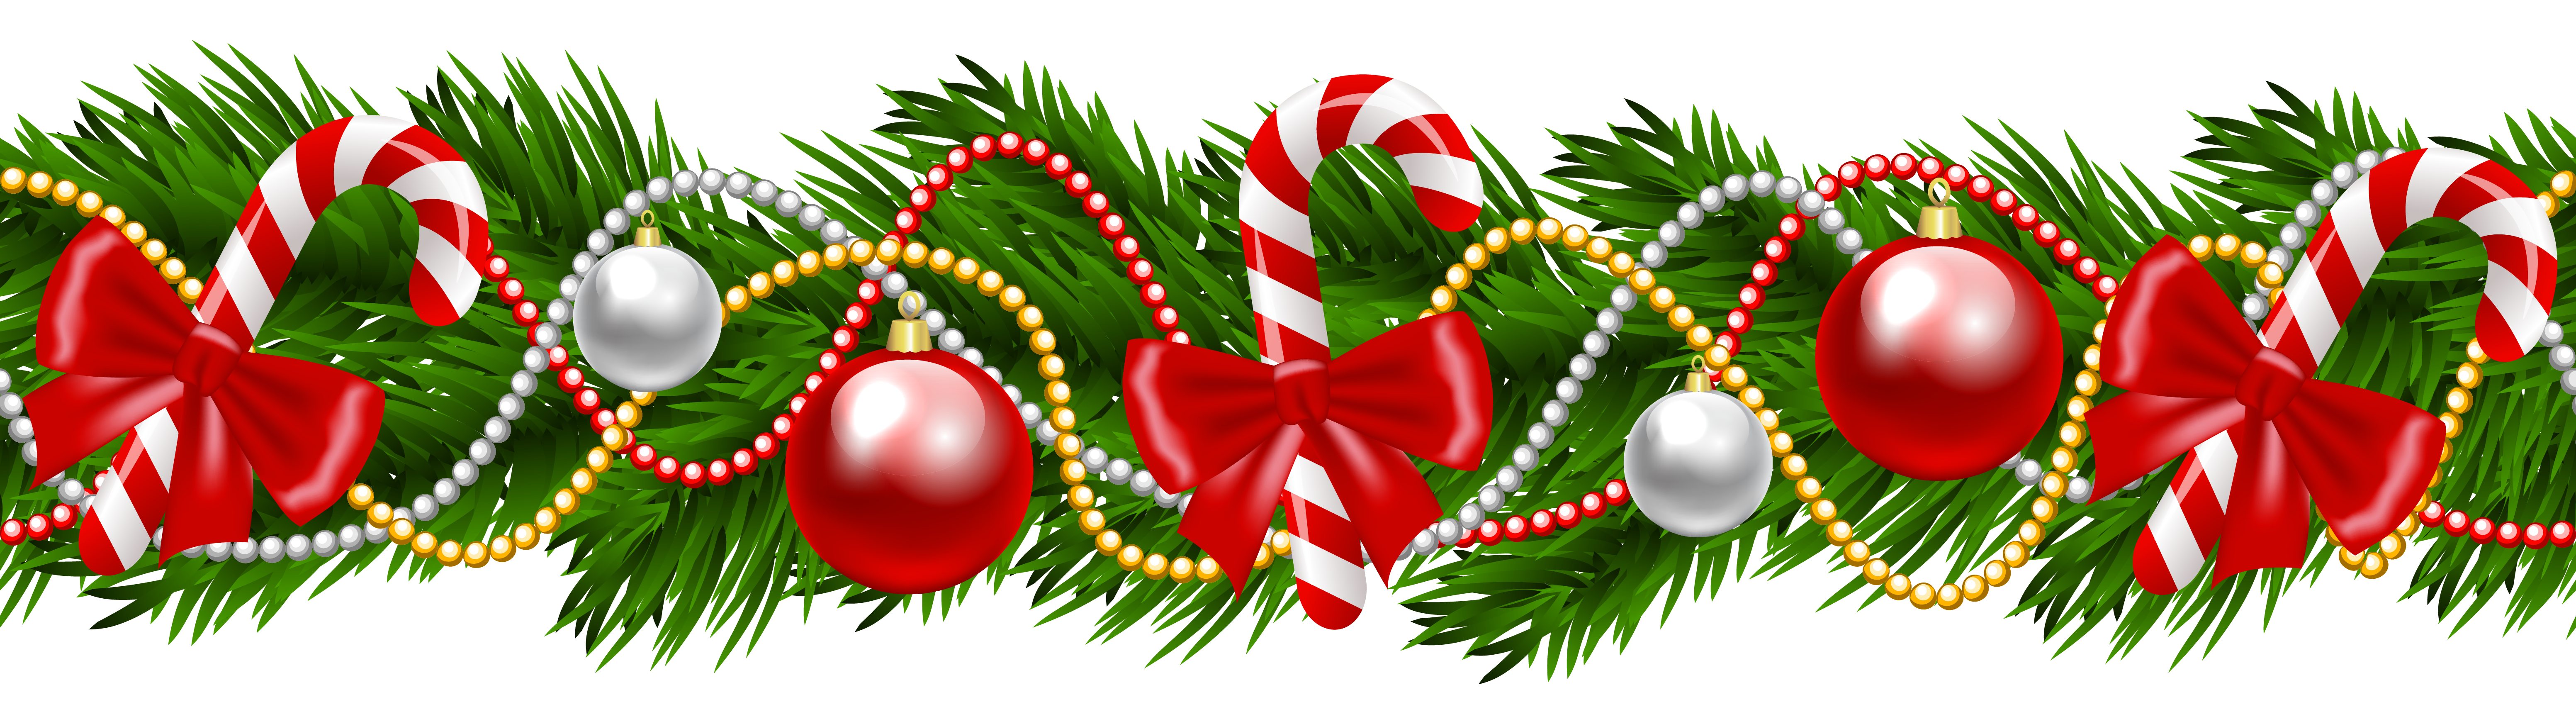 Free clipart christmas garland image transparent library 28+ Collection of Christmas Wreath Border Clipart | High quality ... image transparent library